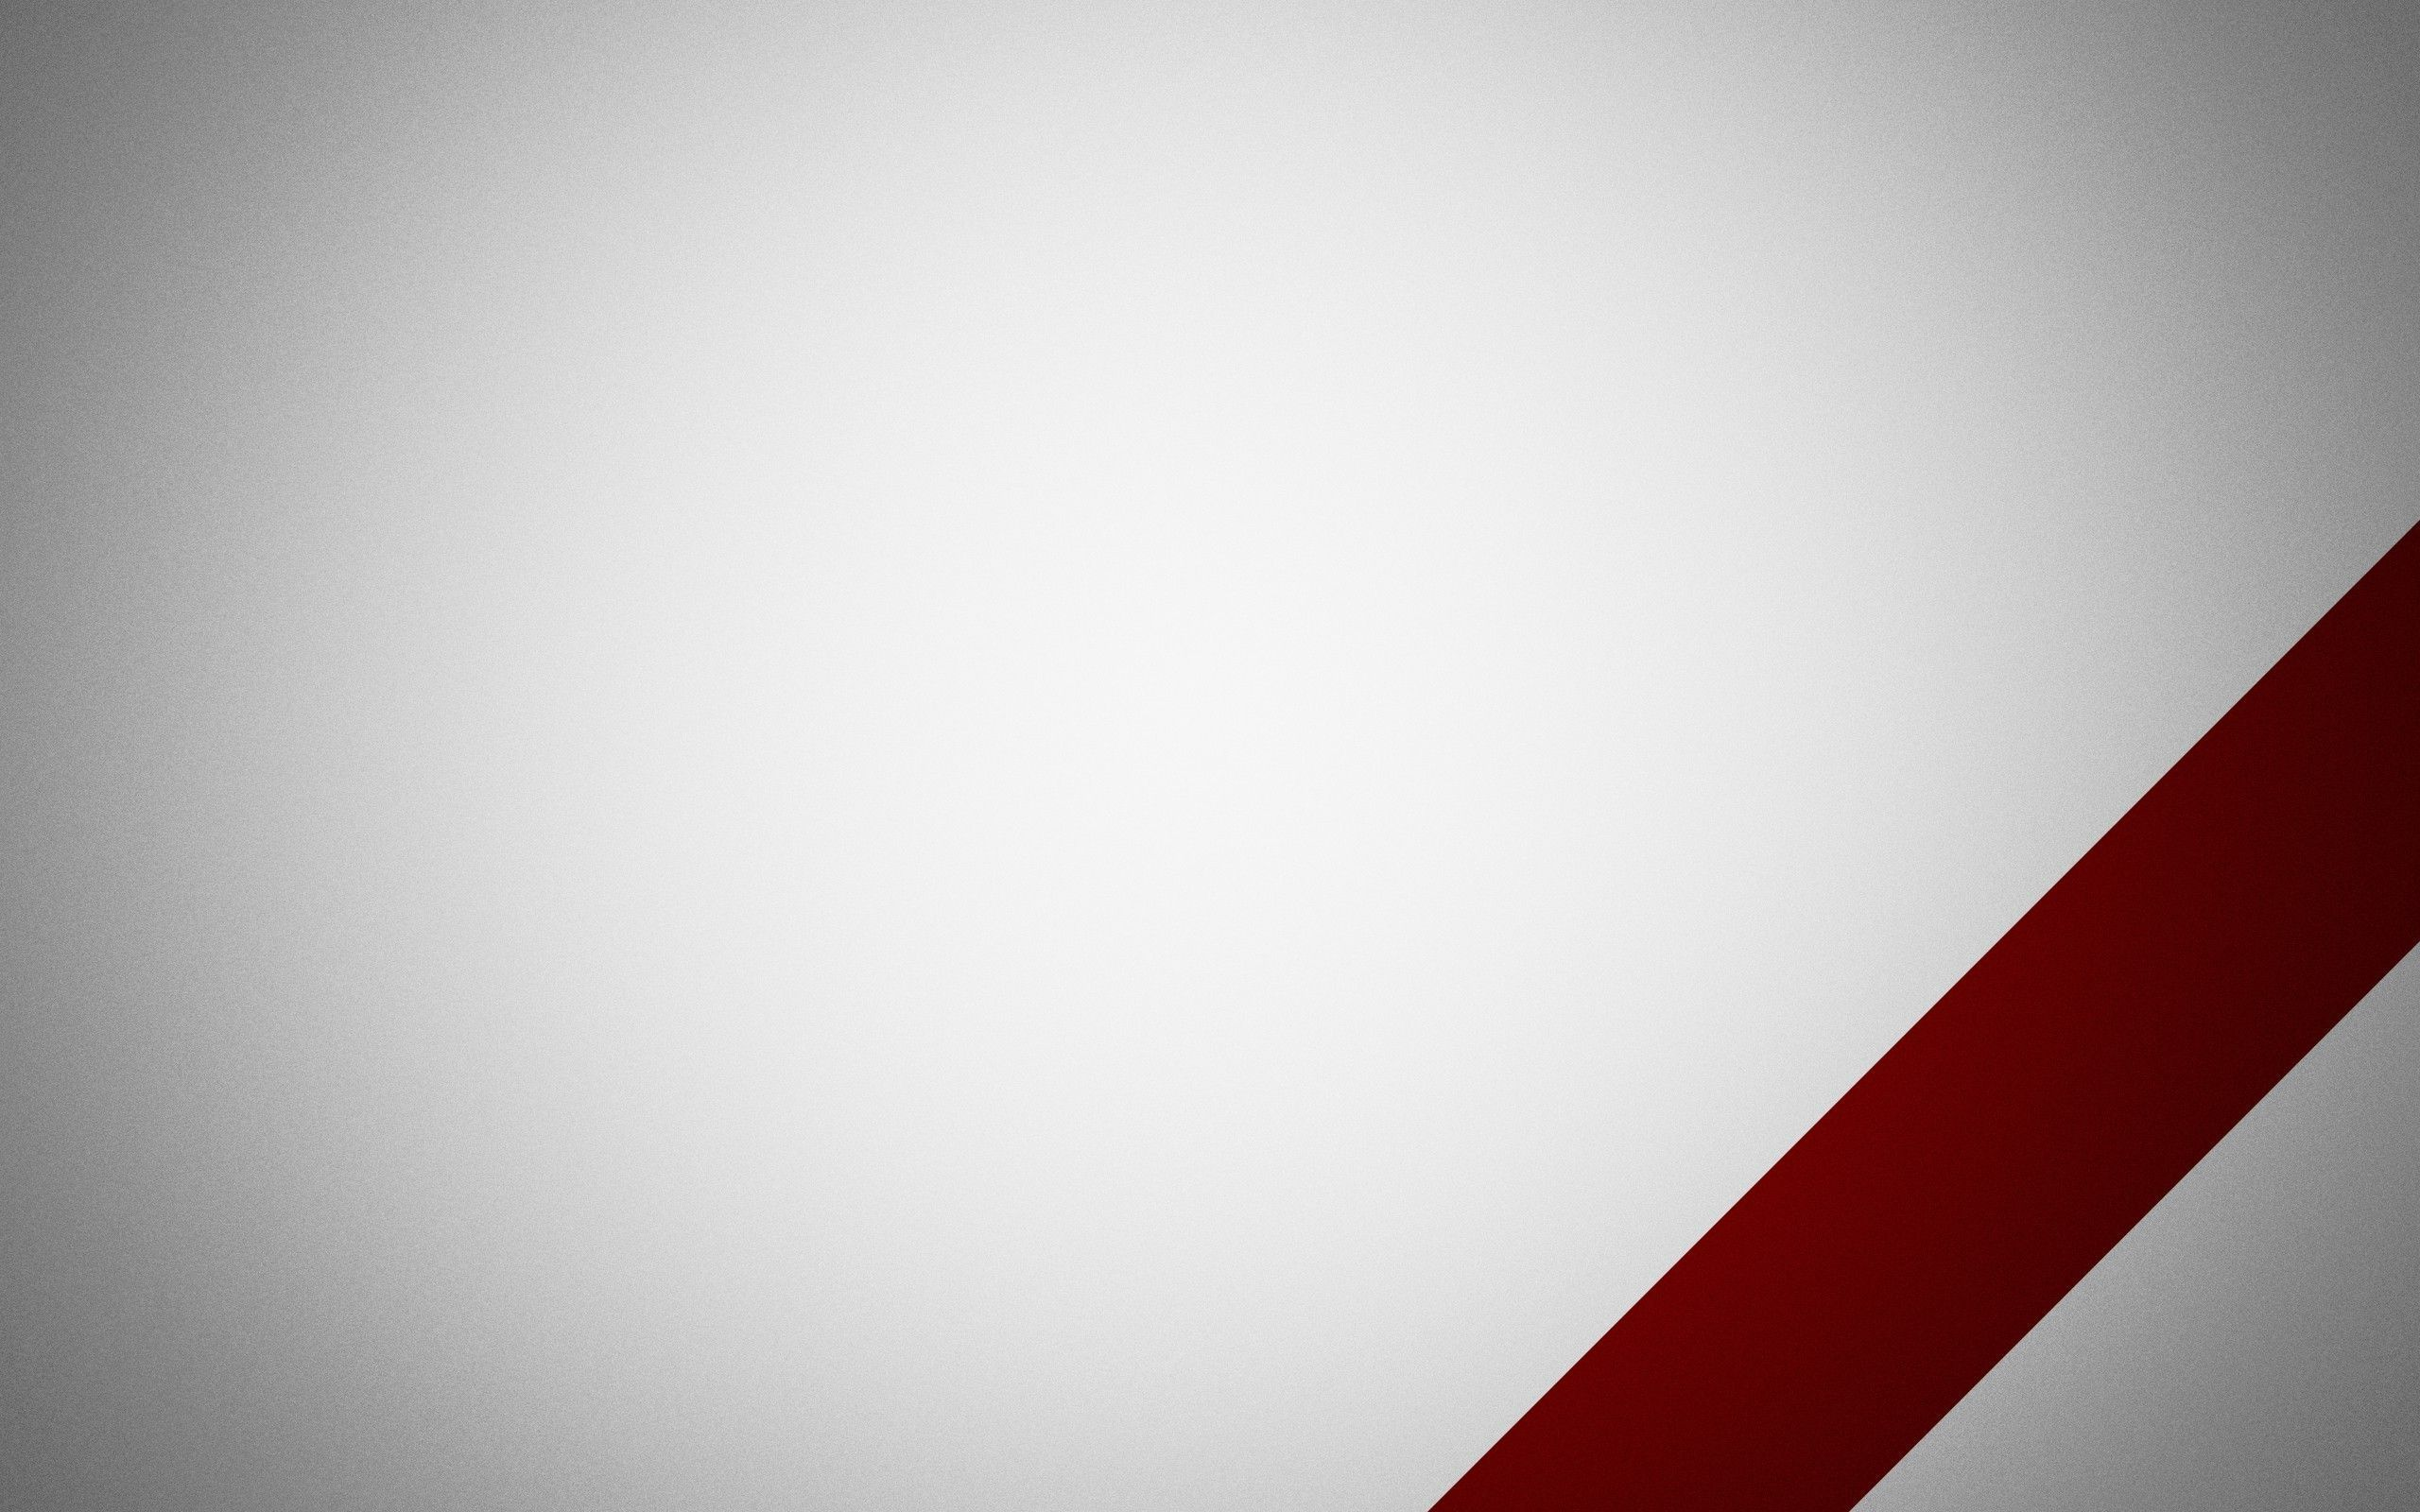 Red And White Backgrounds Wallpaper Cave (с изображениями)